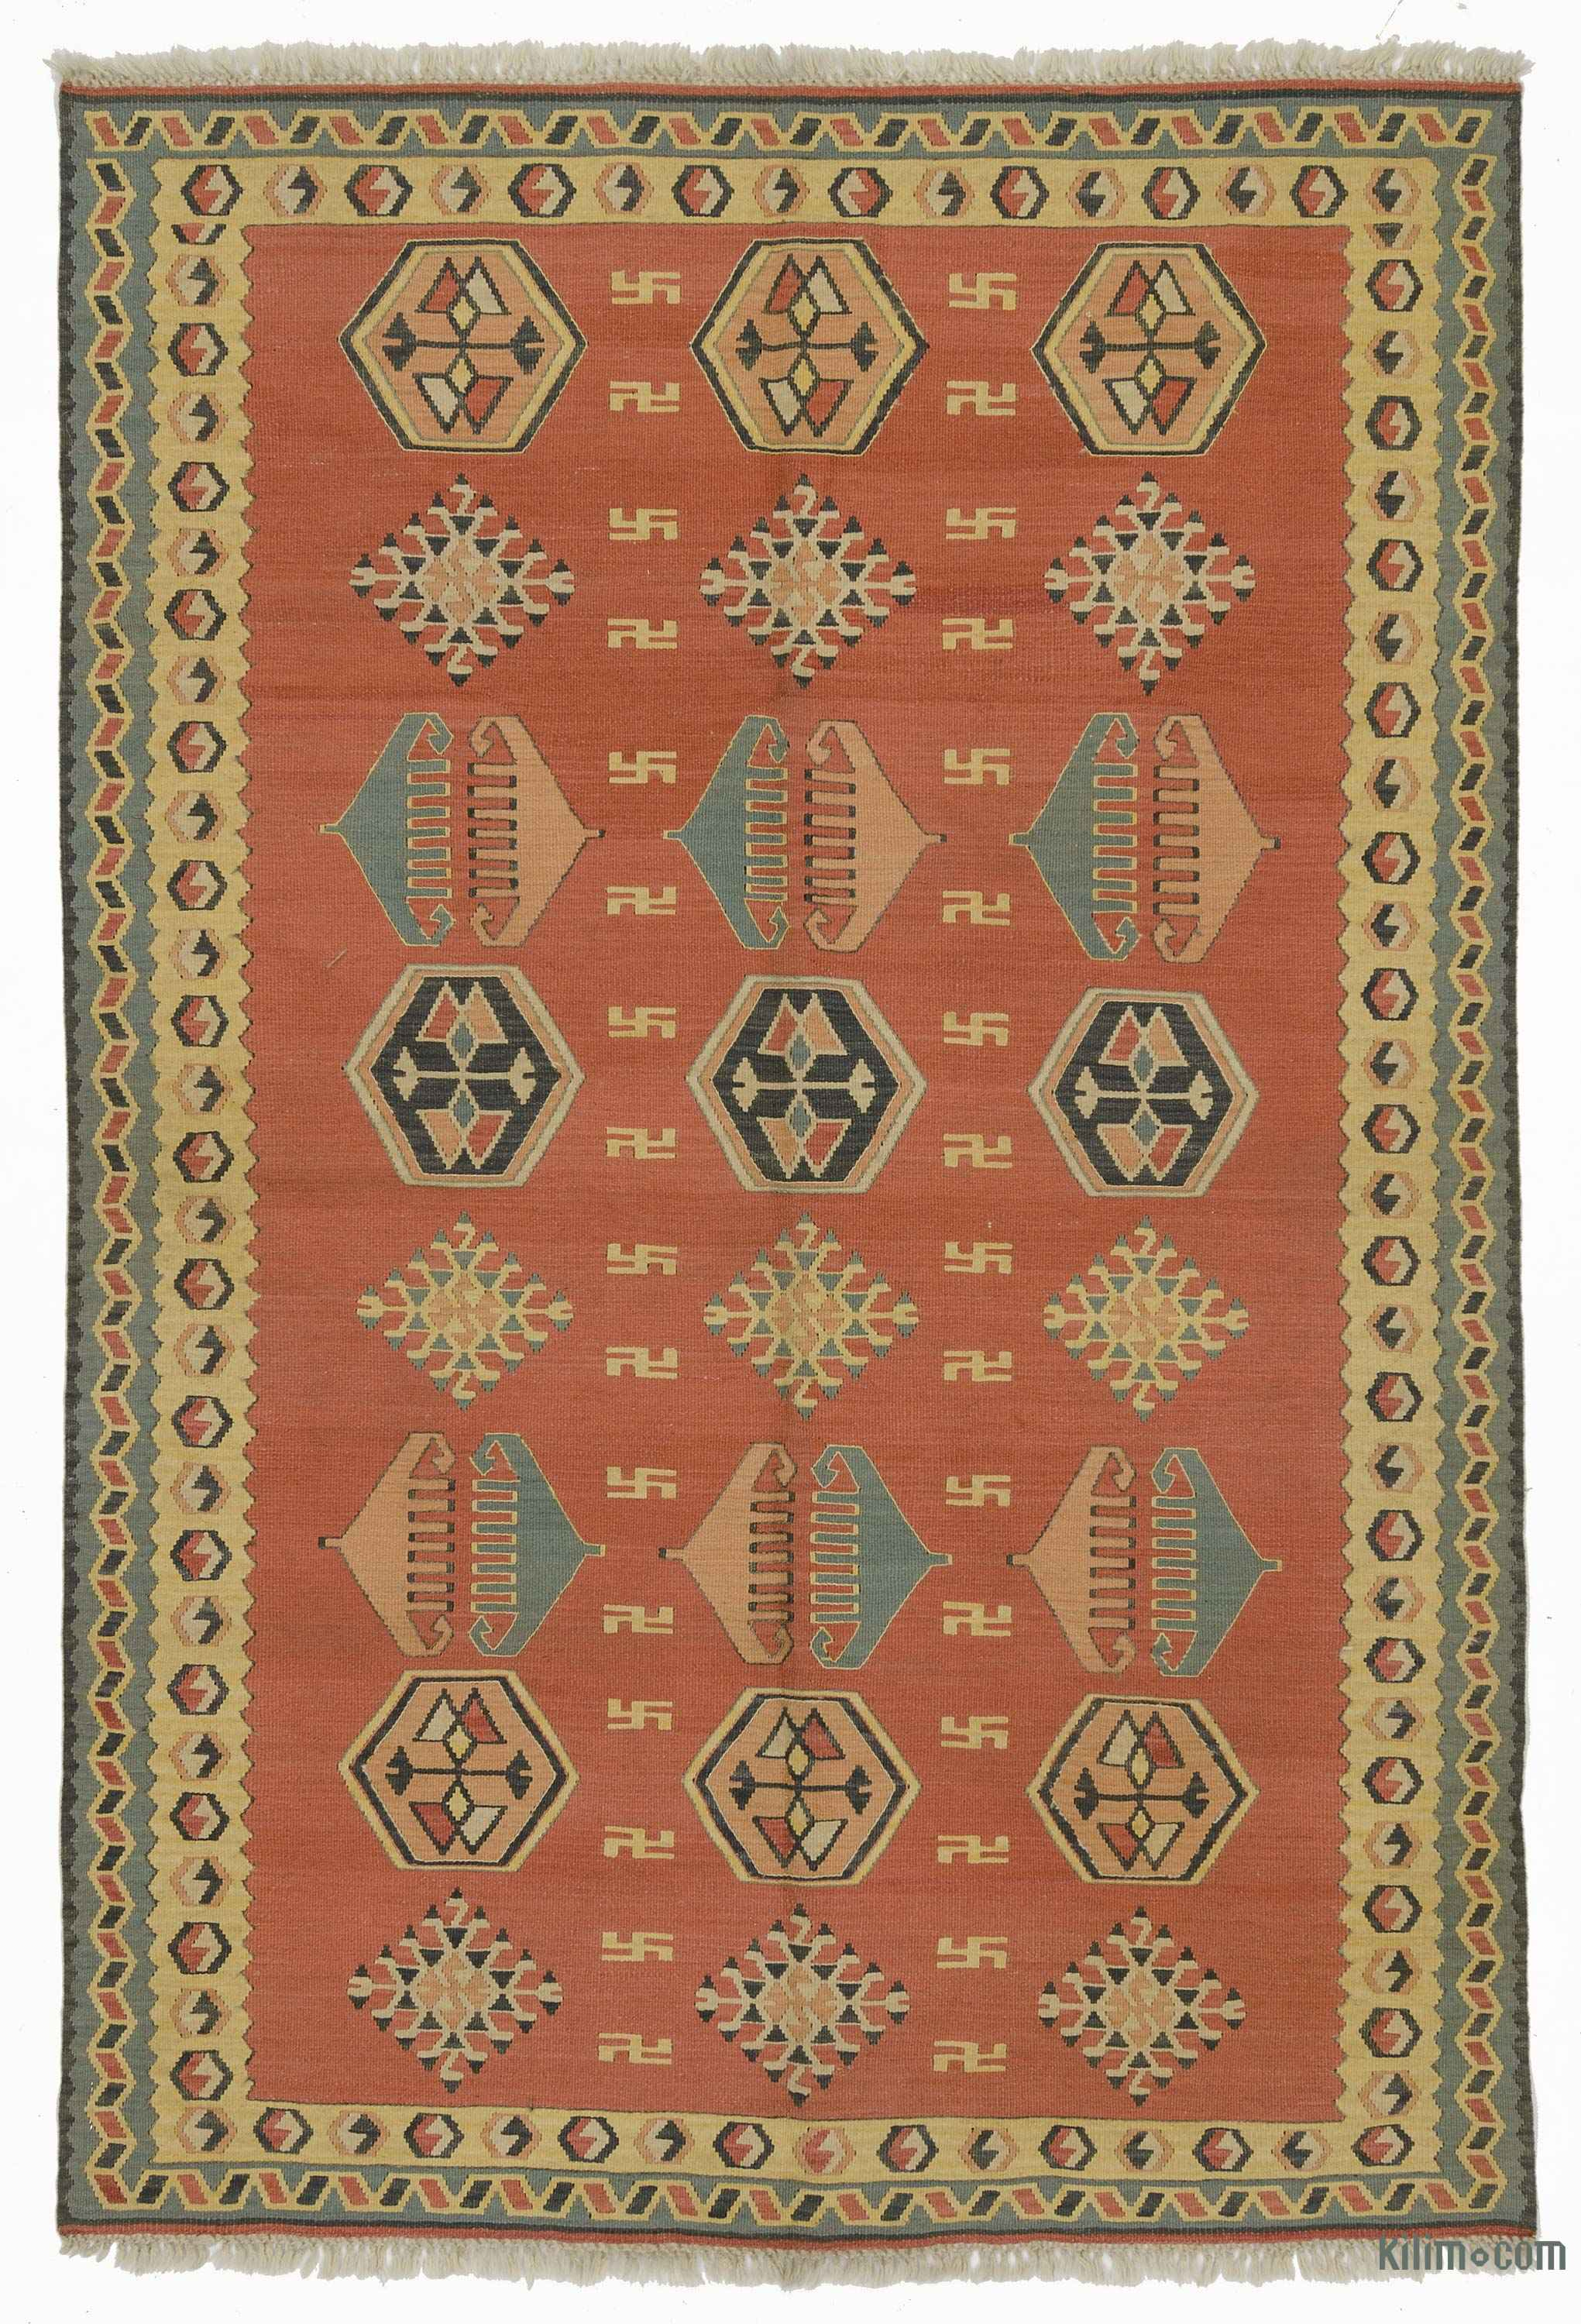 Rugs And Kilims Are The Master Elements Of Bohemian Style: Document Moved